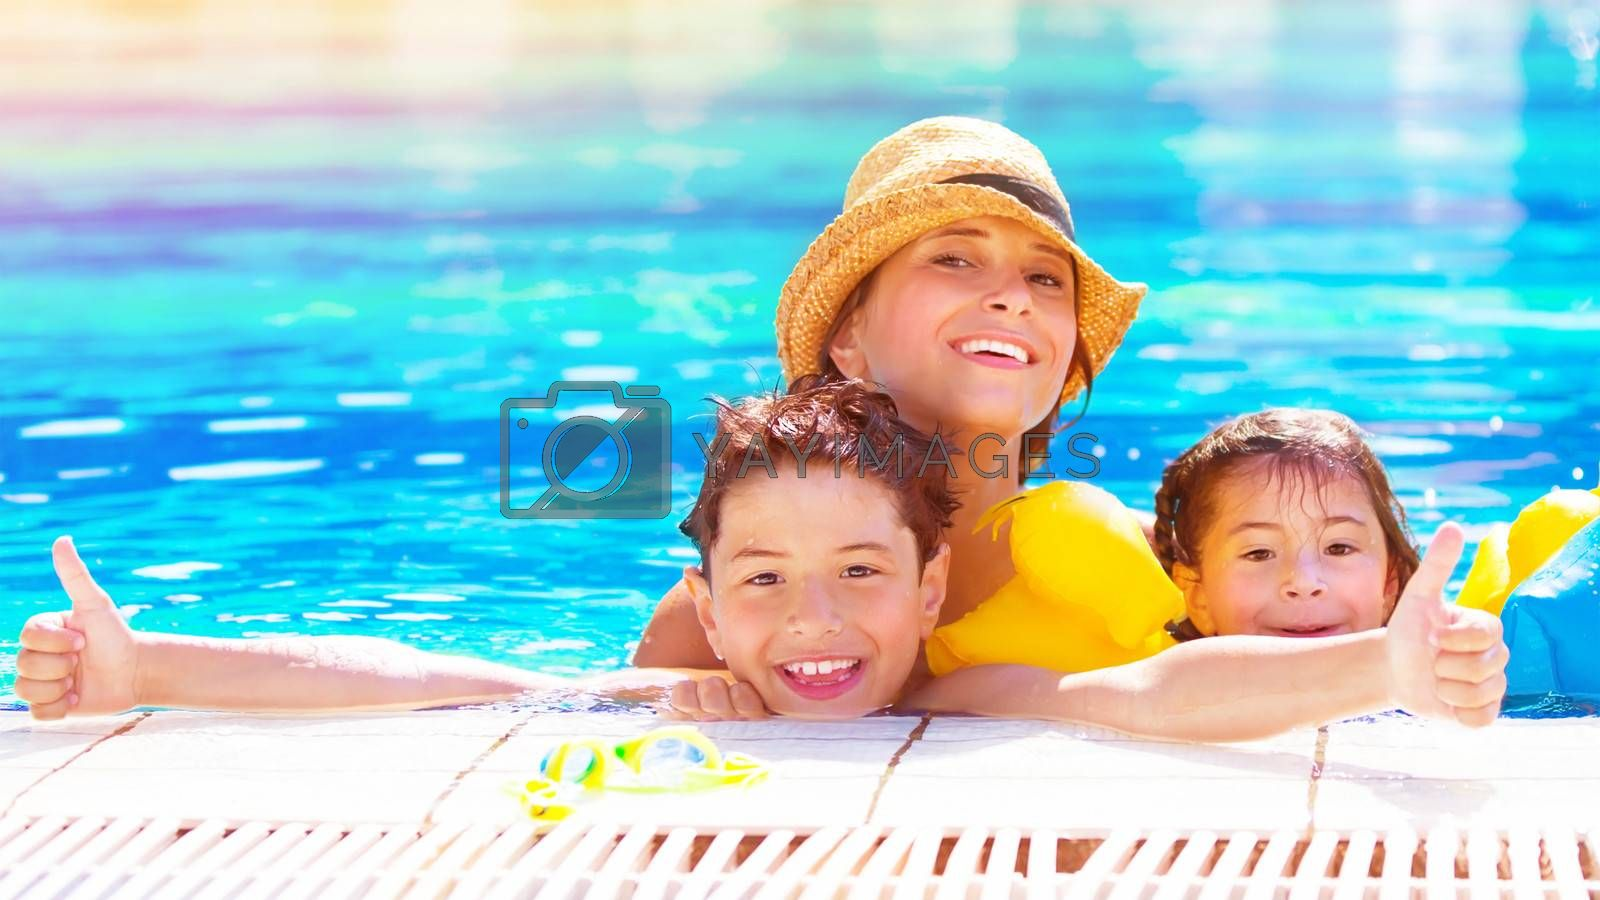 Happy family have fun in the pool, relaxation in aquapark, mother with two cute kids swimming in cool water, spending together summer vacation